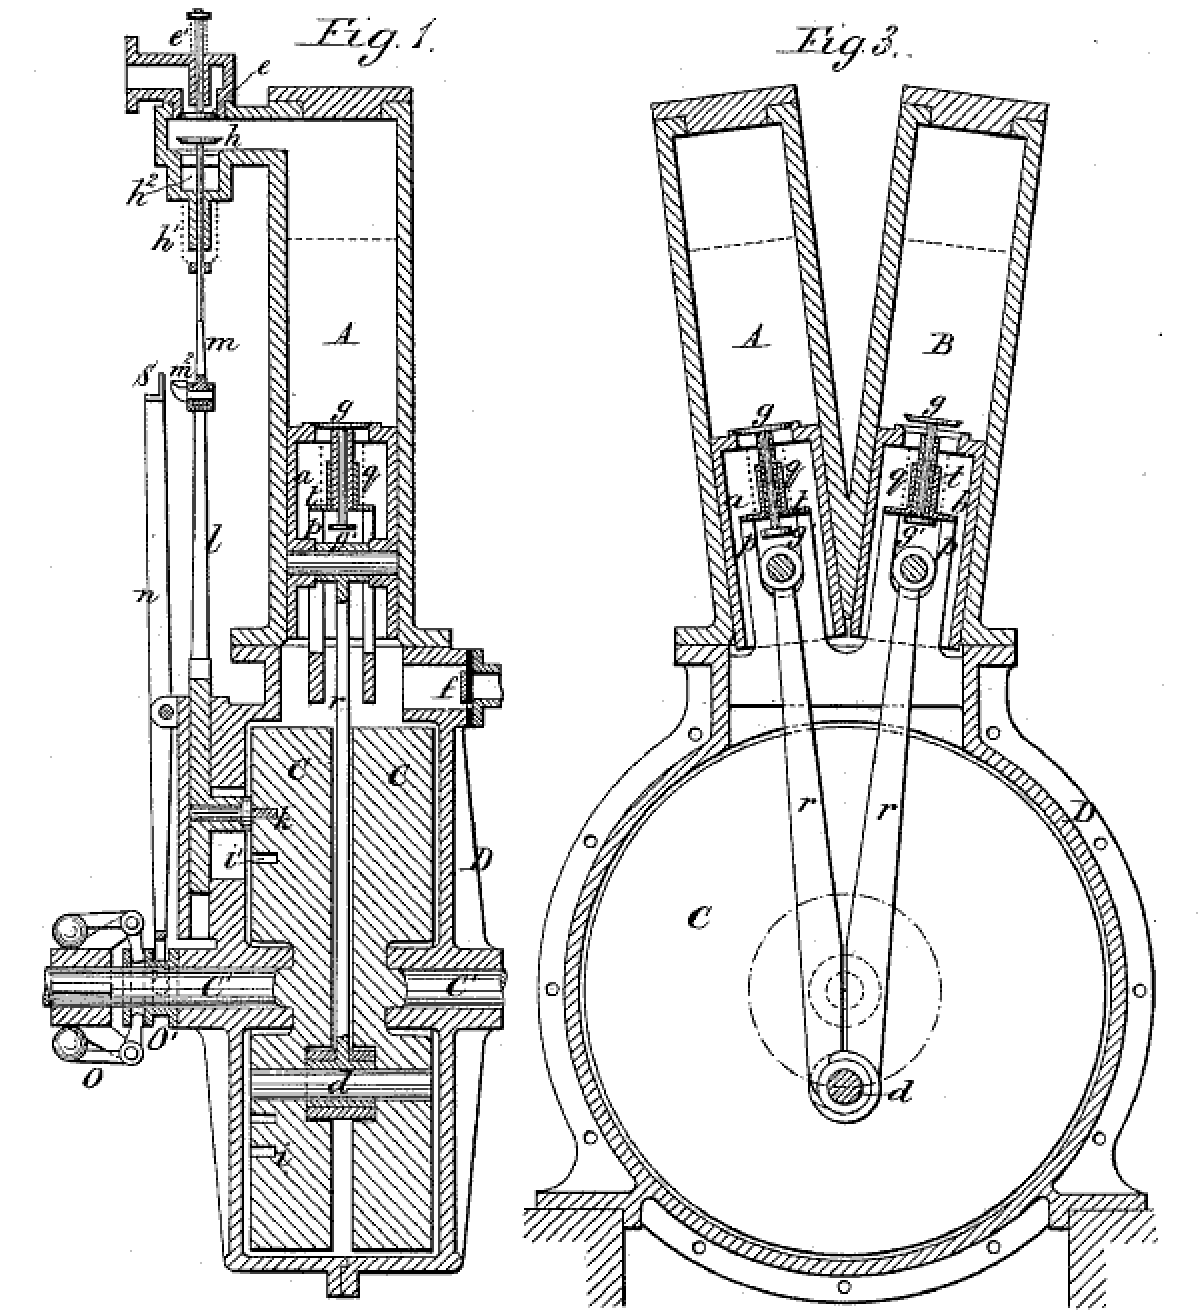 Gas Power Cycle Internal  bustion Engine also 1 9 Valve Timing Diagrams also ShowAssembly moreover Ciclo Teorico De Brayton further Verbrennungsmotor. on otto engine